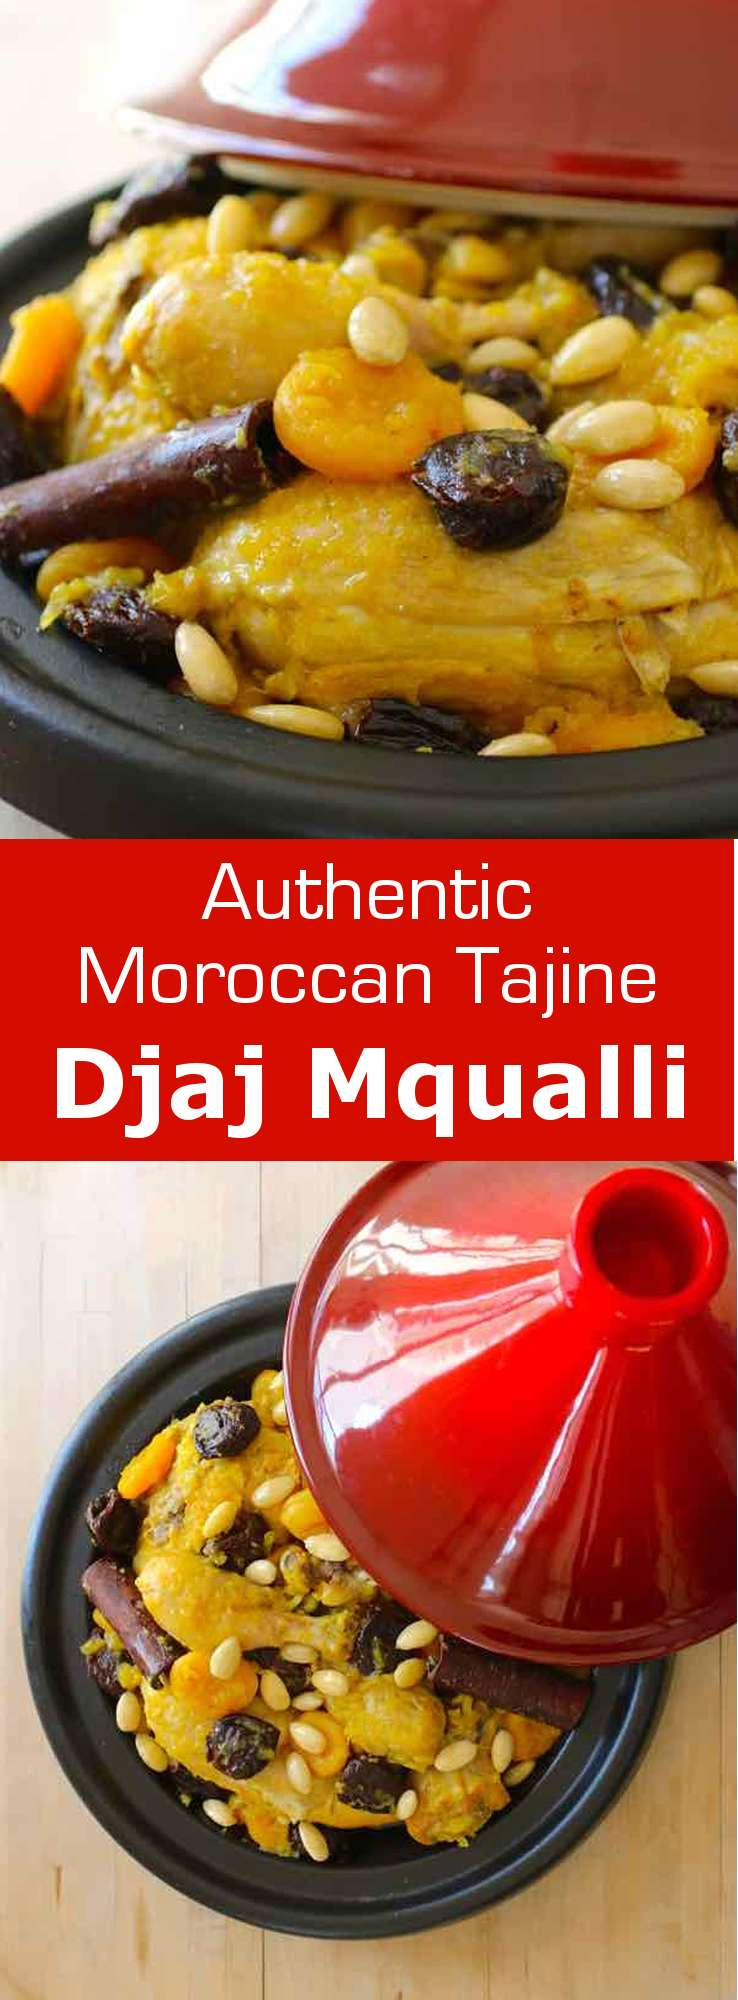 Djaj Mqualli with dried fruits is a popular Moroccan tajine combining the flavors of chicken with the sweetness of prunes, apricots and almonds. #Morocco #Moroccan #196flavors